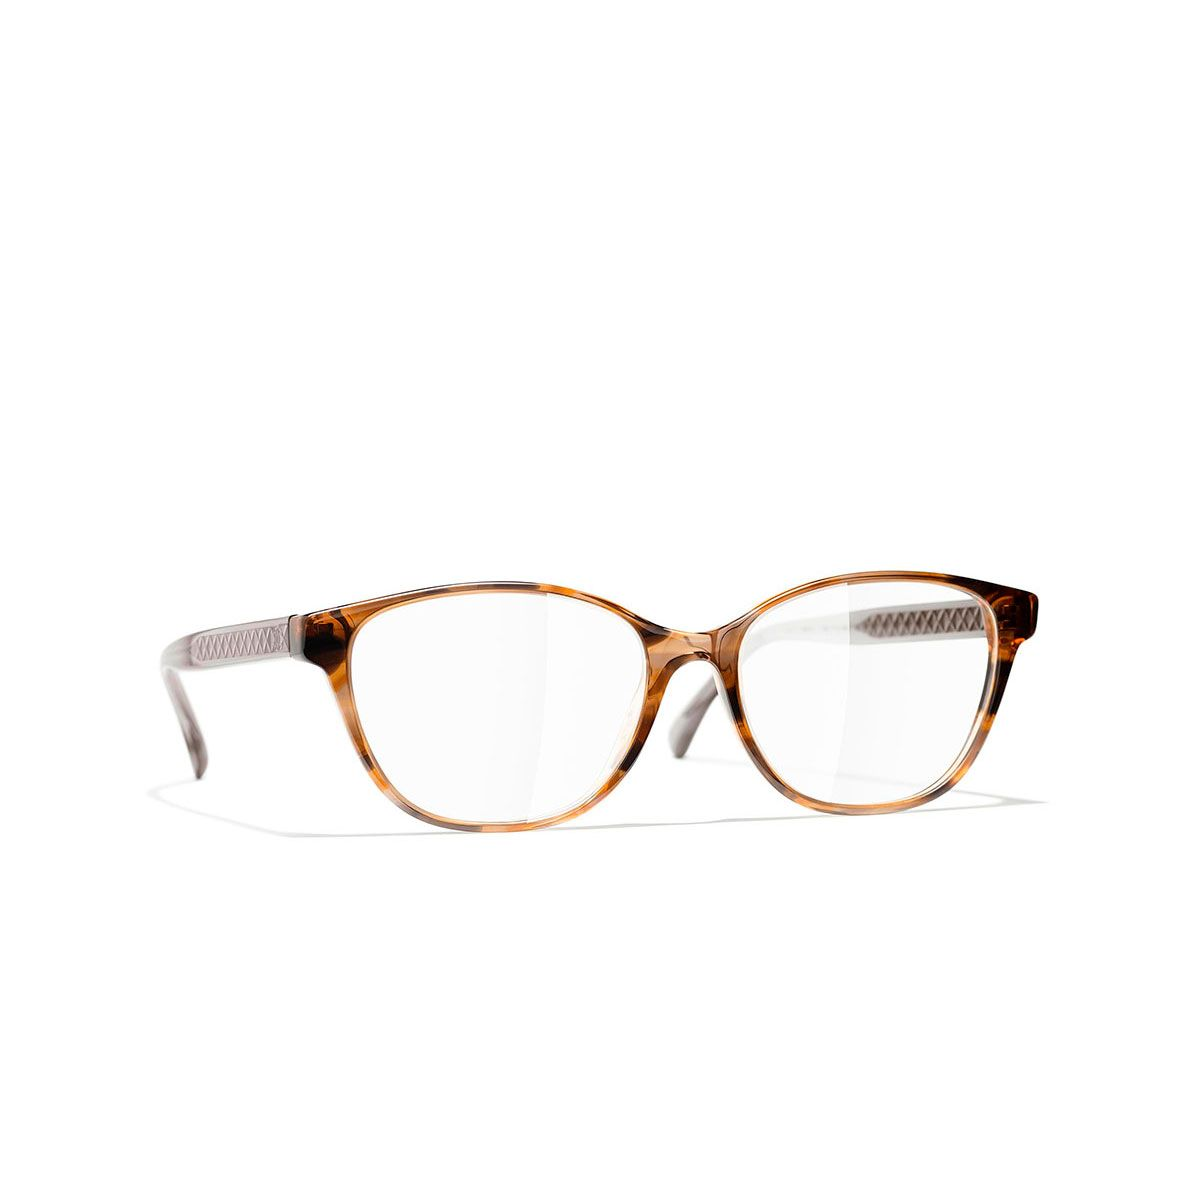 Butterfly Eyeglasses 240 Optical